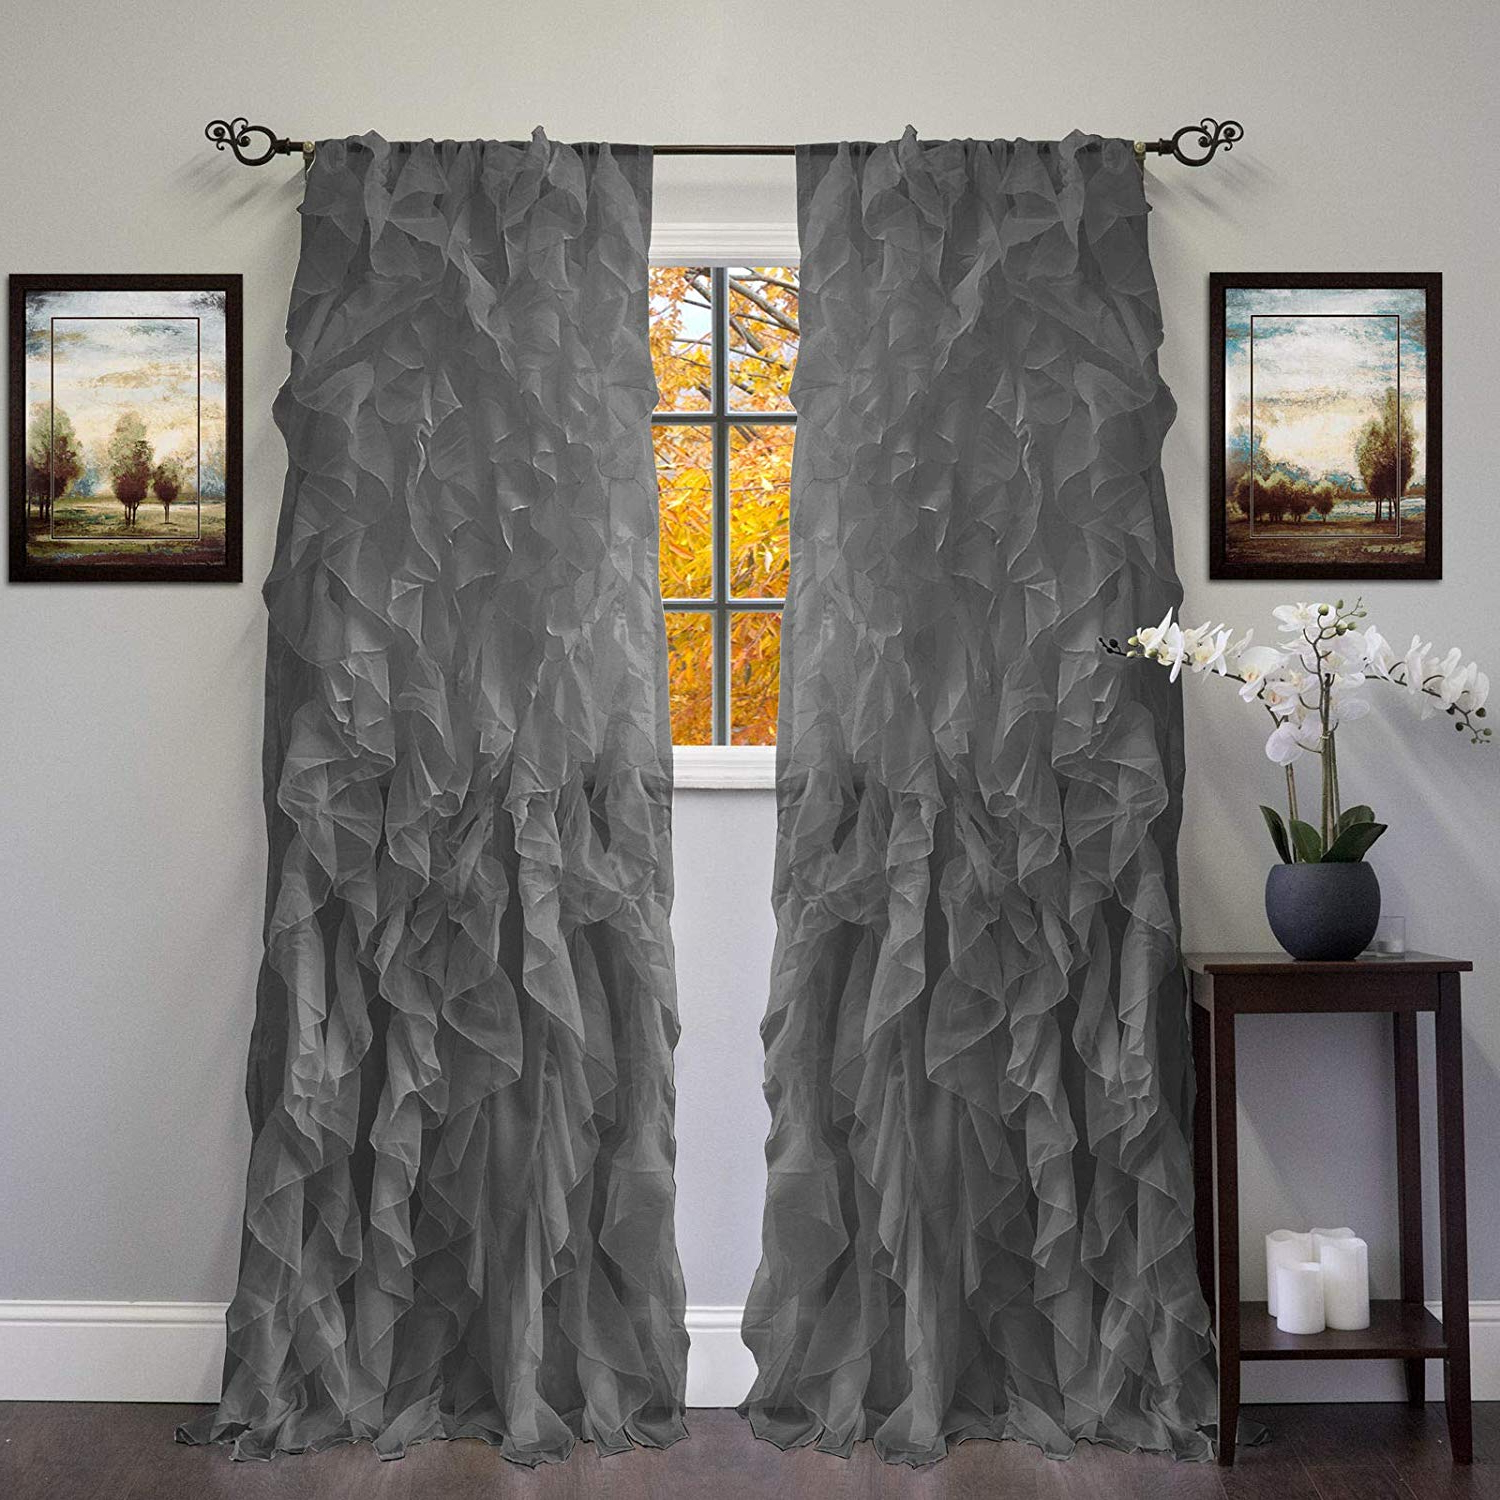 Latest Silver Vertical Ruffled Waterfall Valance And Curtain Tiers Pertaining To Amazon: Dn Lin New Chic Sheer Voile Vertical Ruffled (View 9 of 20)